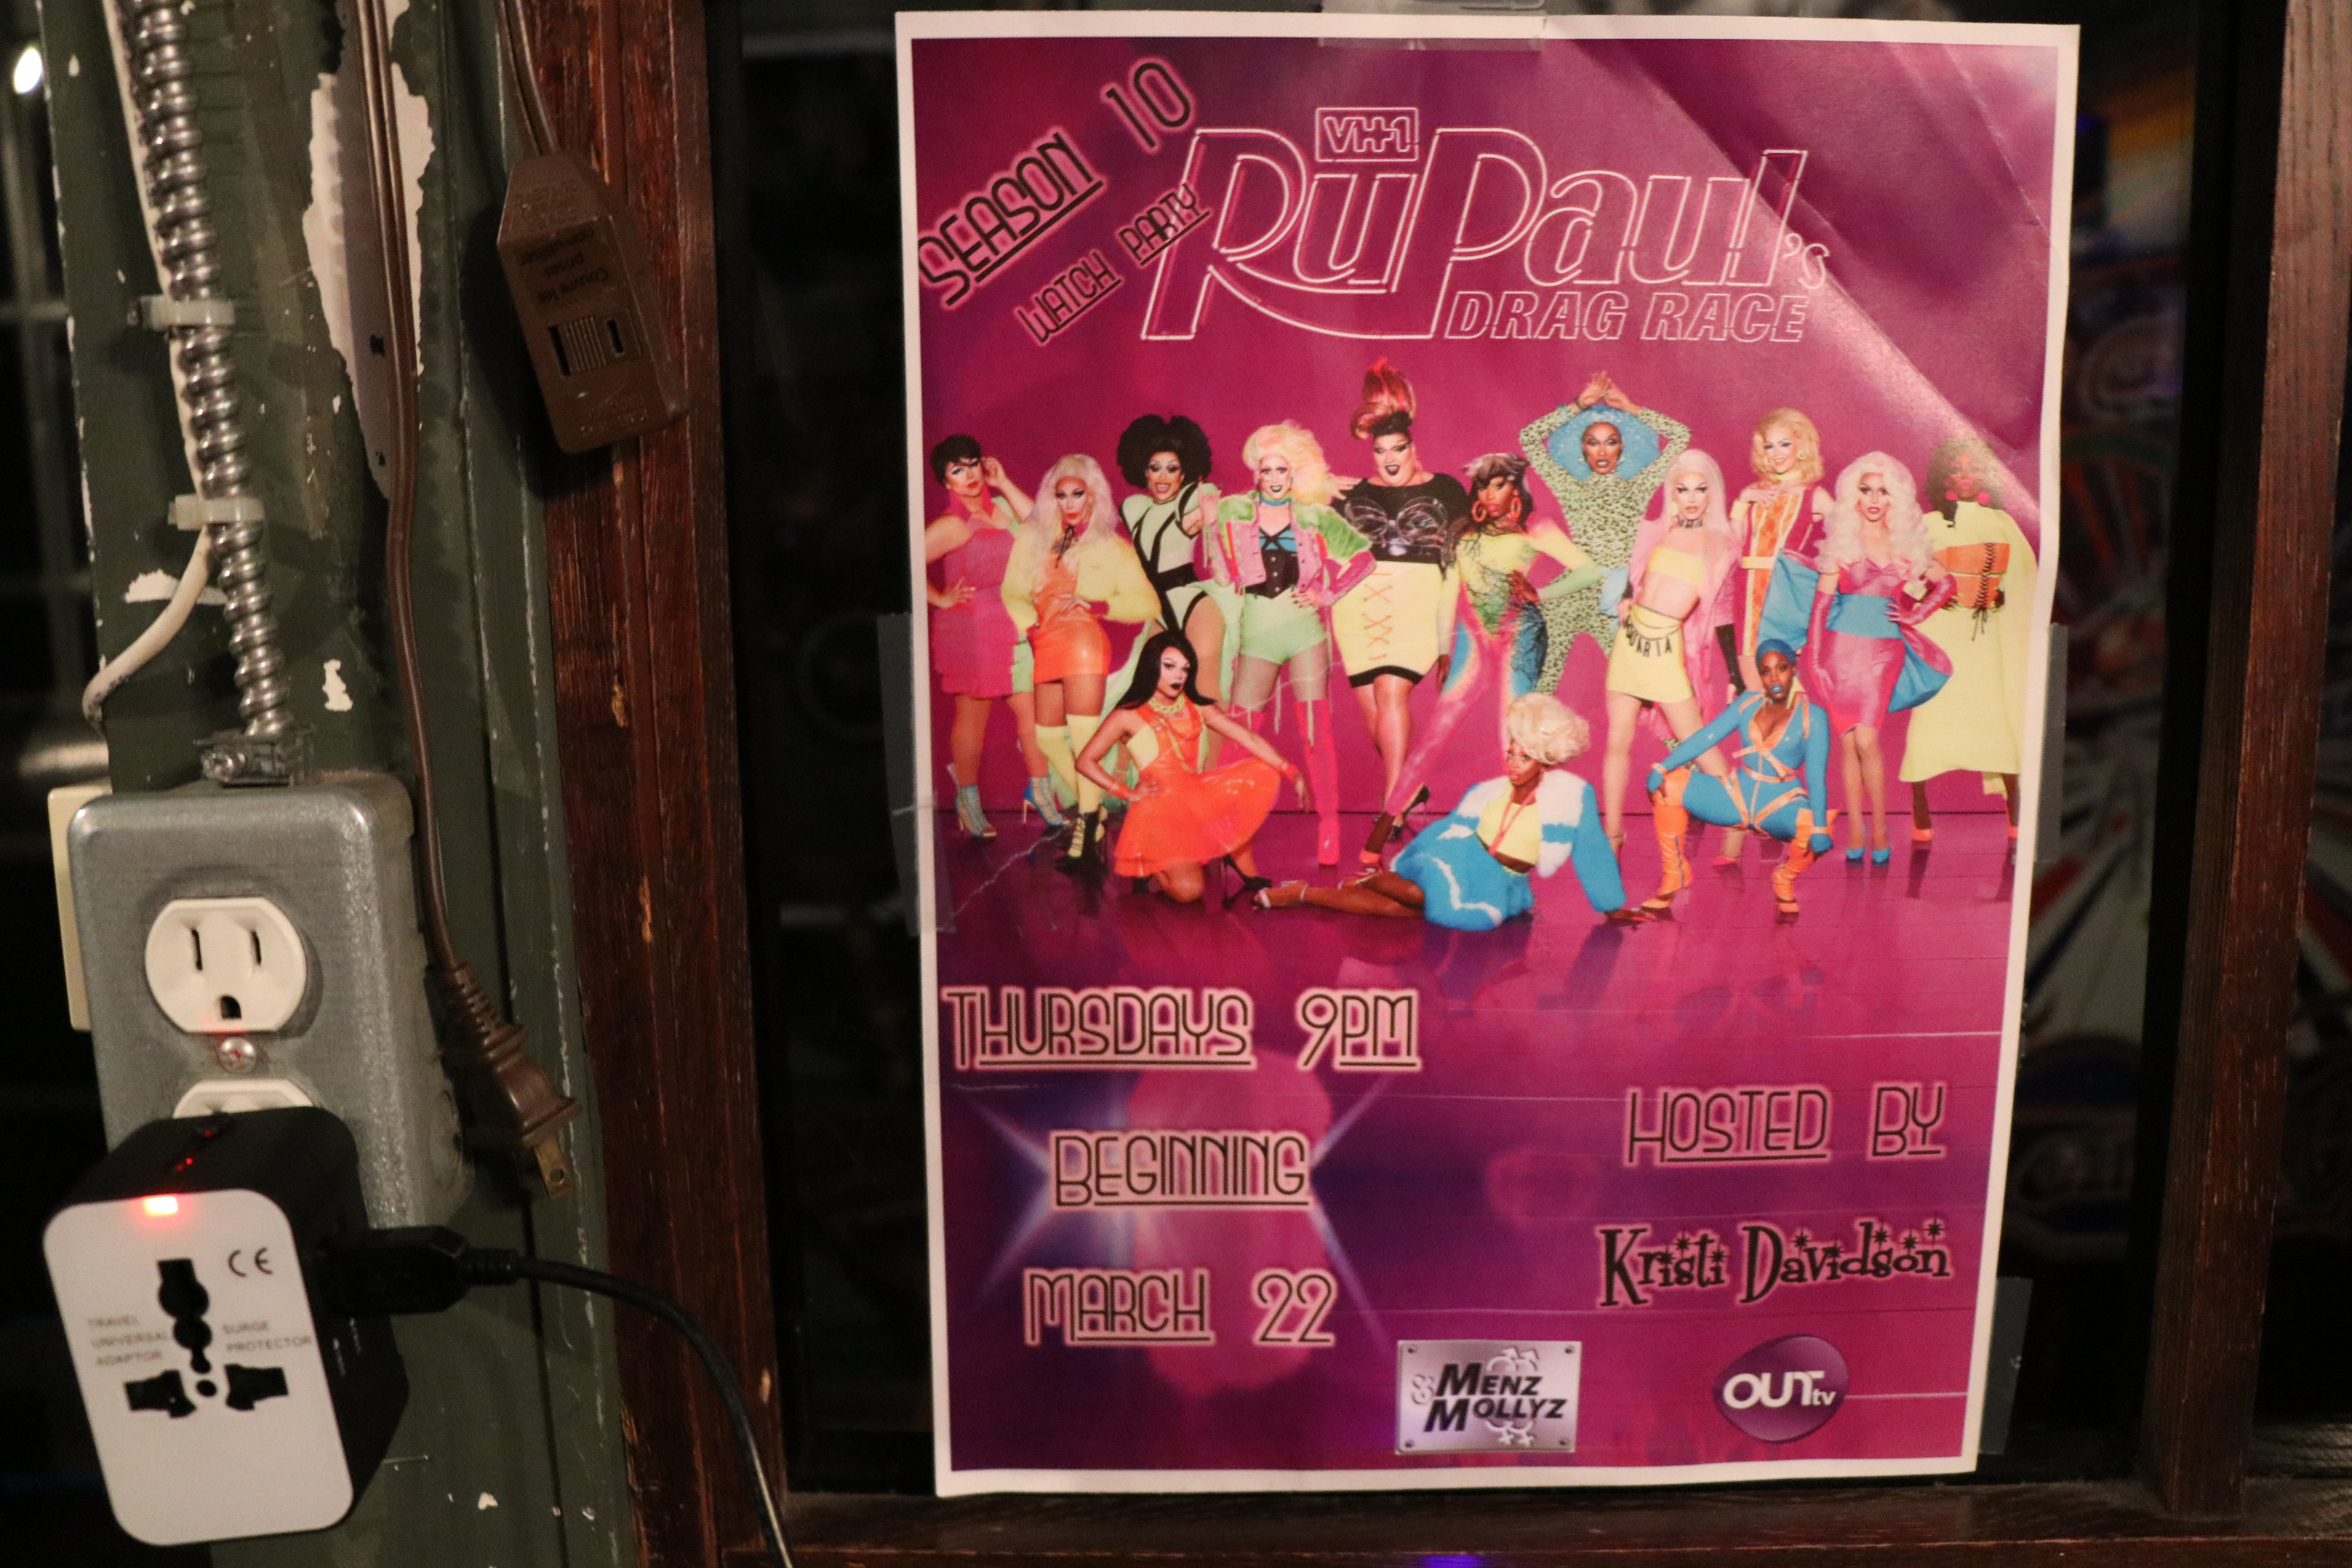 A poster for RuPaul's Drag Race at Menz & Mollyz Bar in Halifax. (Emma Davie/CBC)